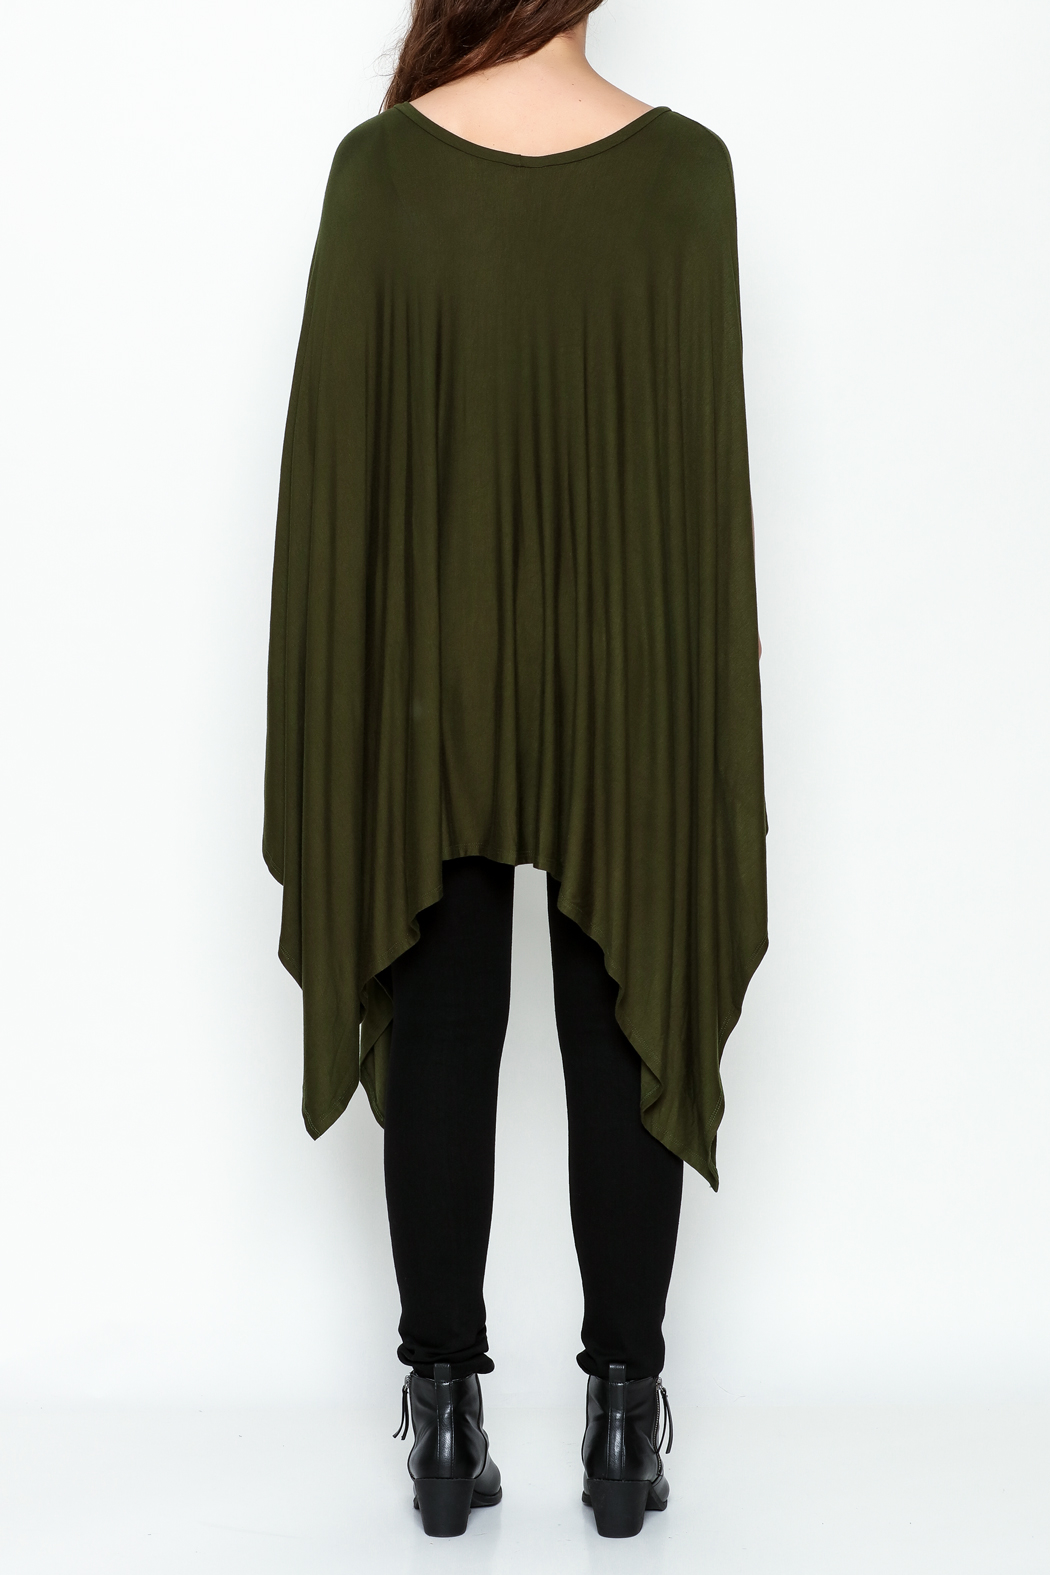 Got Style Olive Sleeveless Poncho - Back Cropped Image